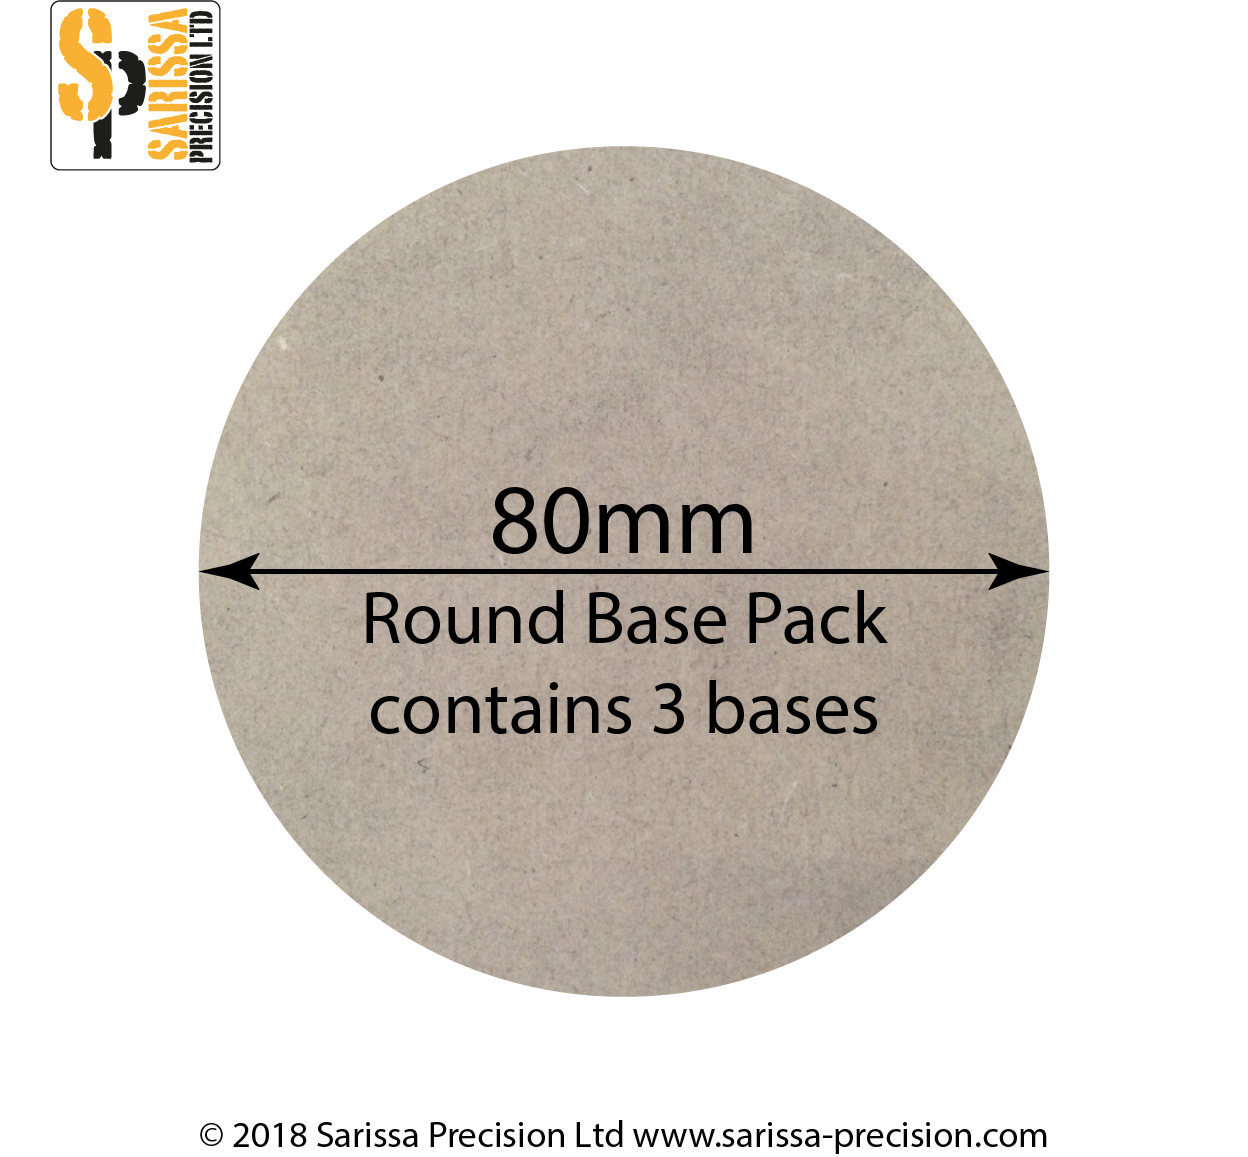 80mm Round Base Pack